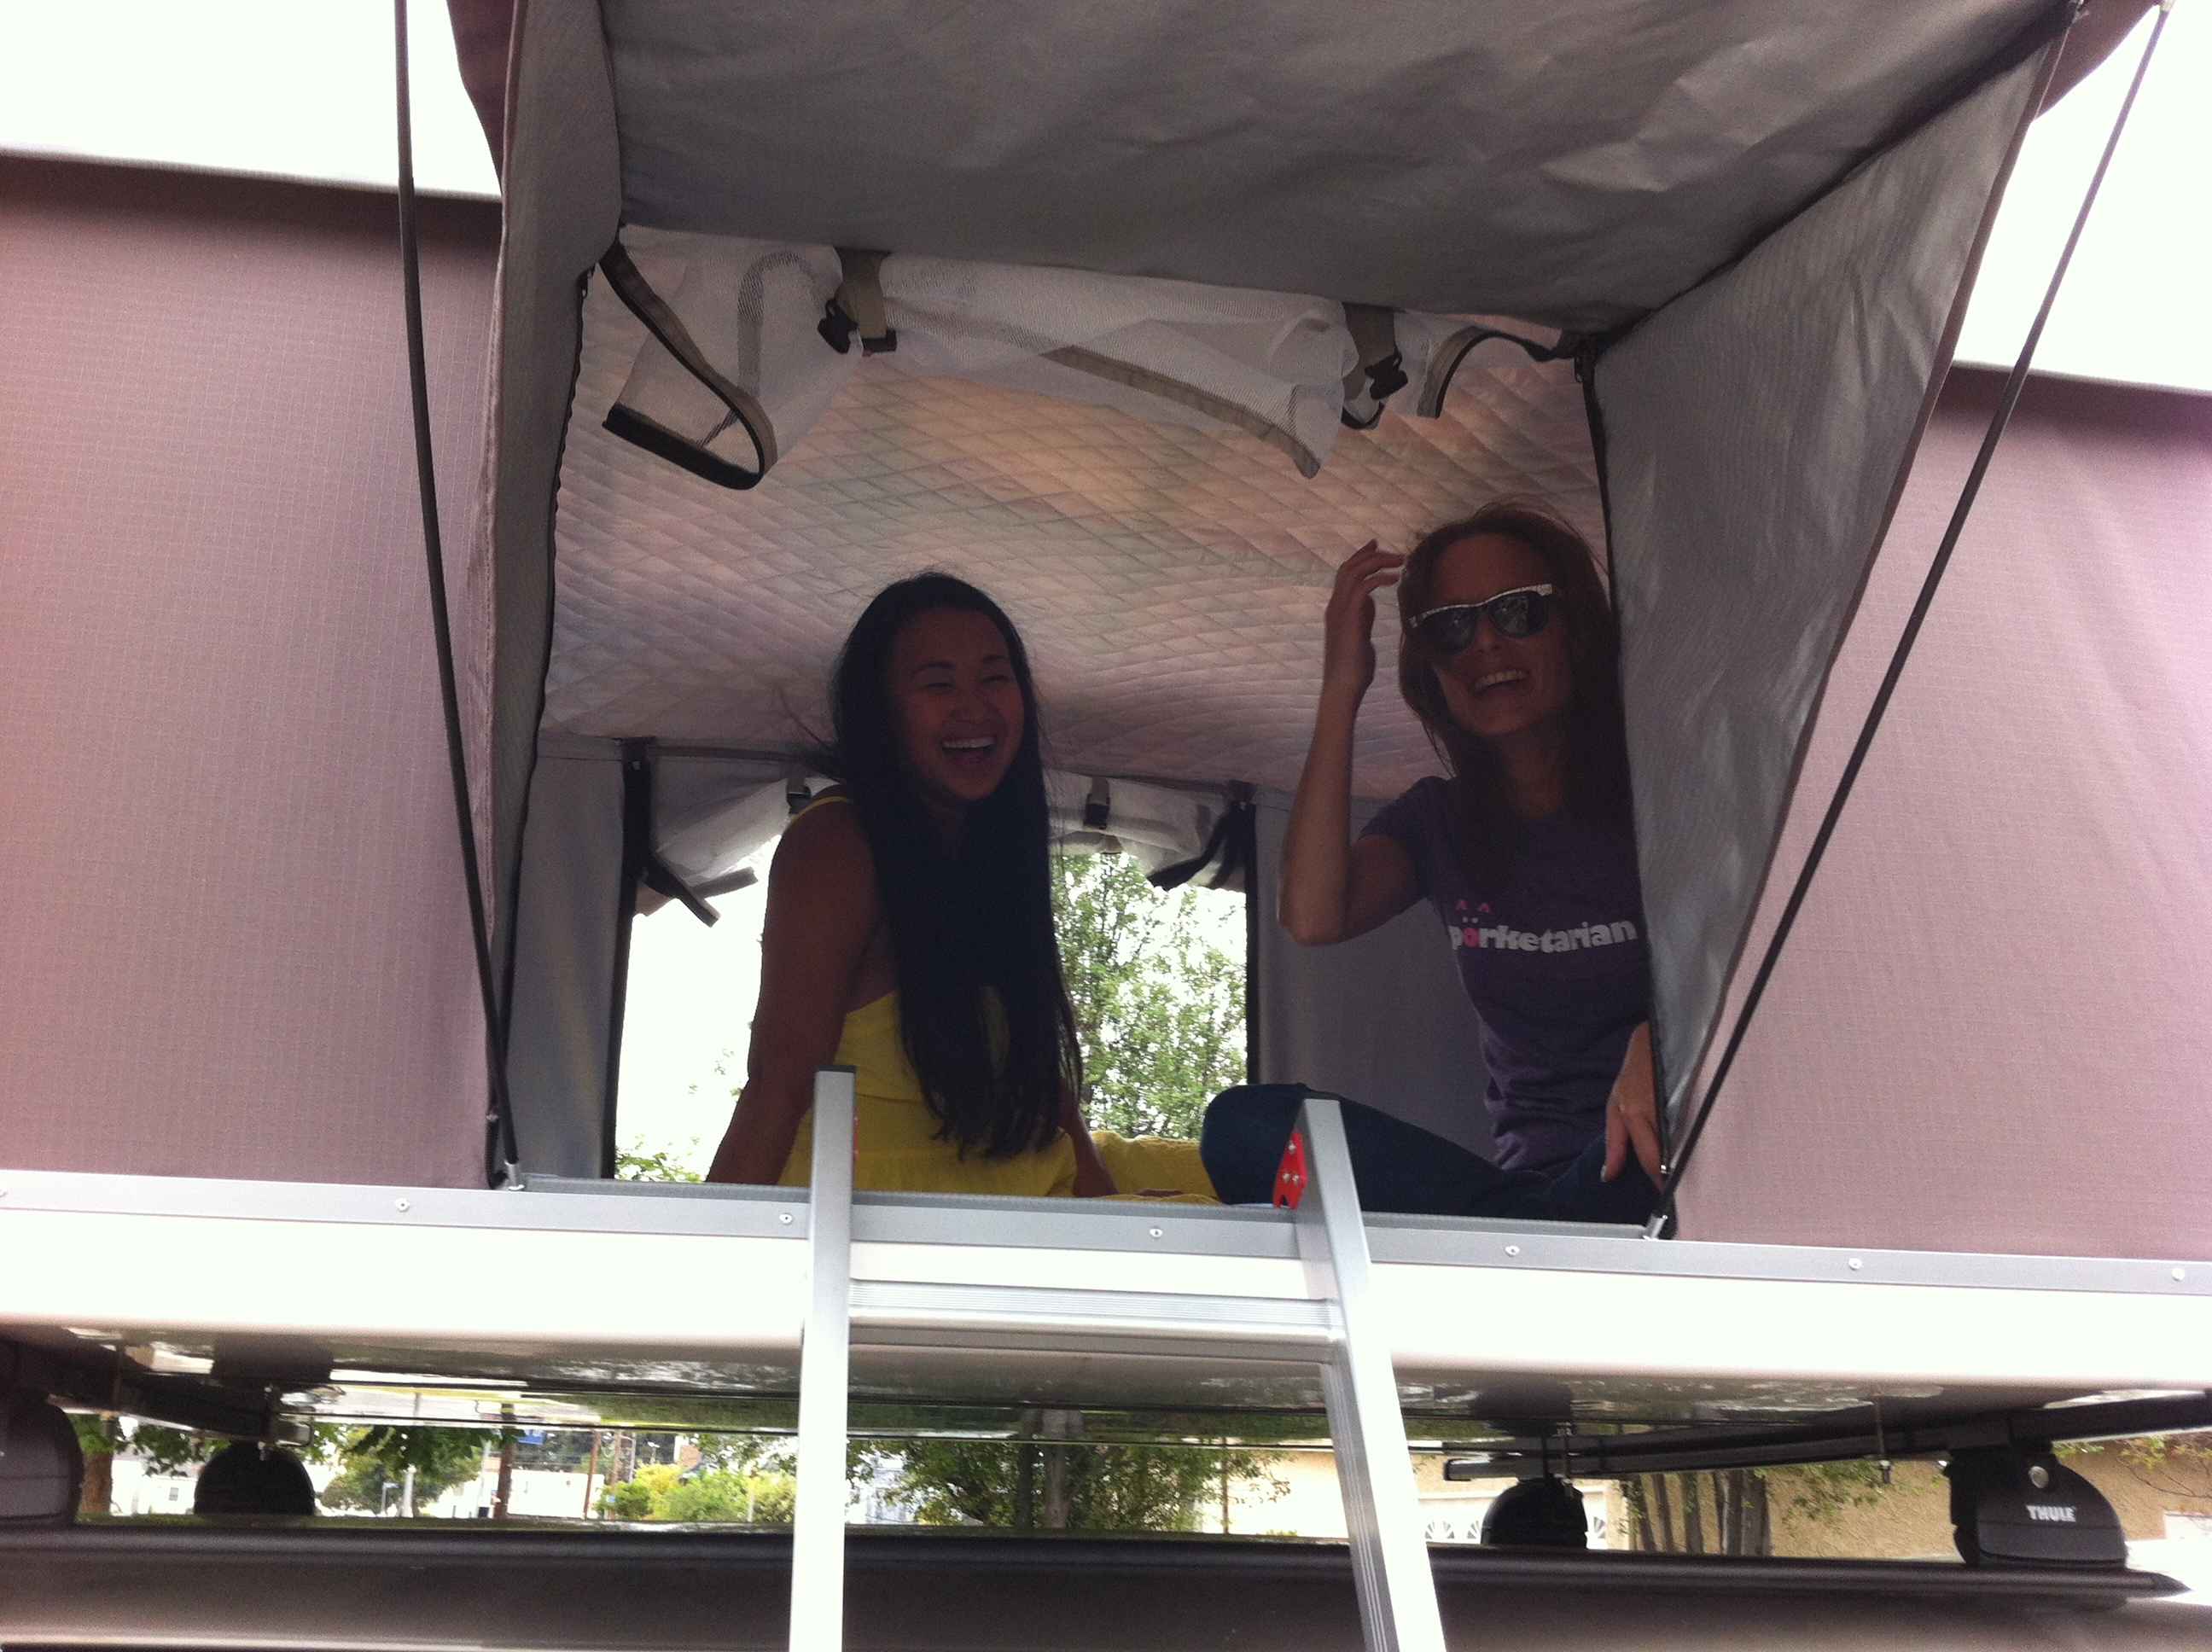 Two Ladies chatting in a Roof Top Tent